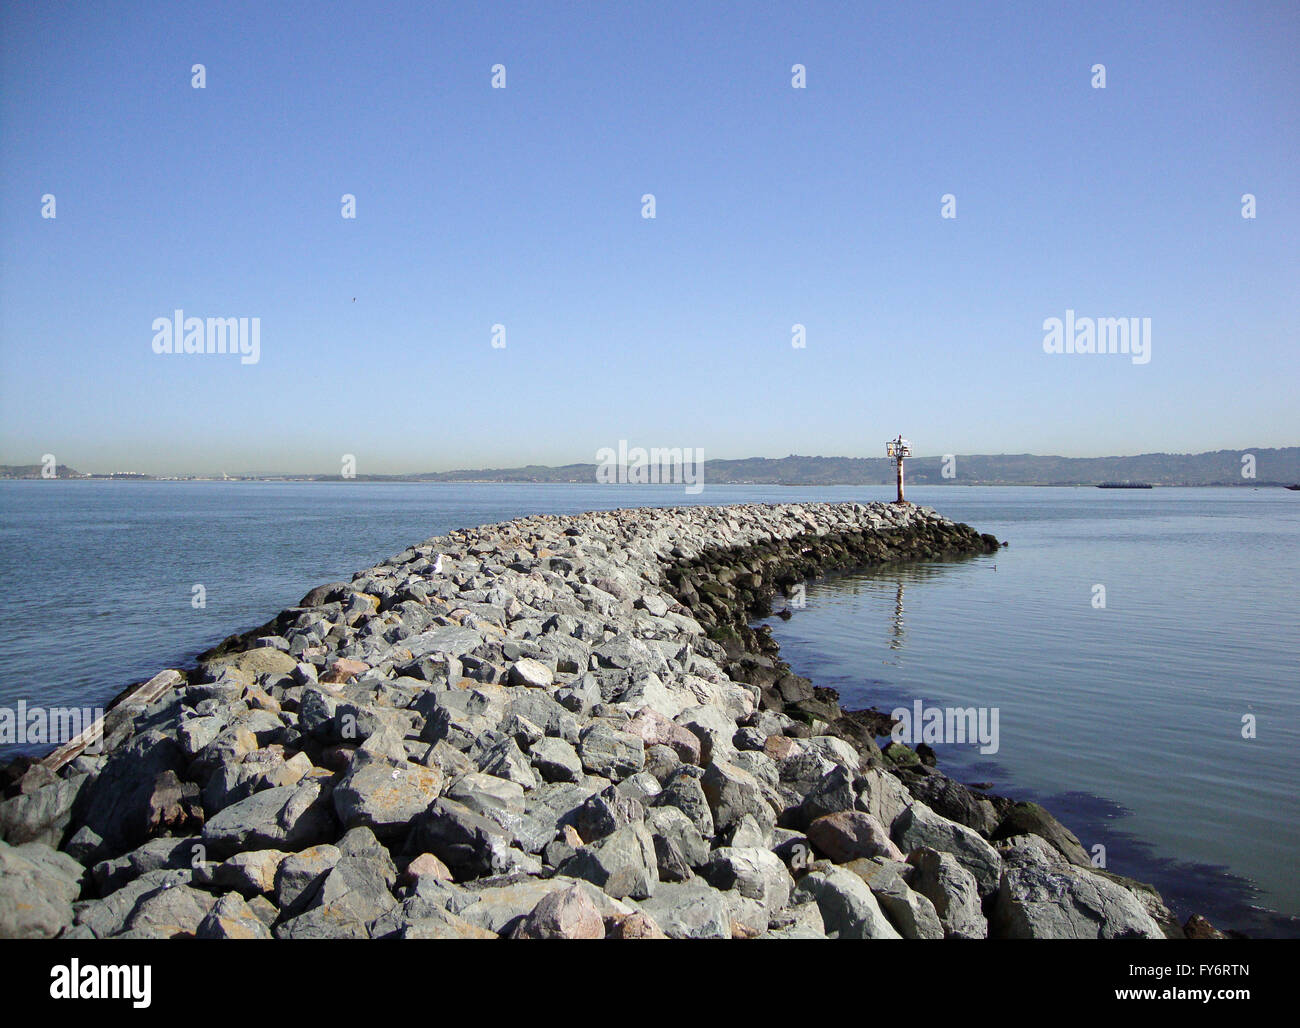 Curved Rock Jetty with light beacon at end in San Francisco Bay. - Stock Image